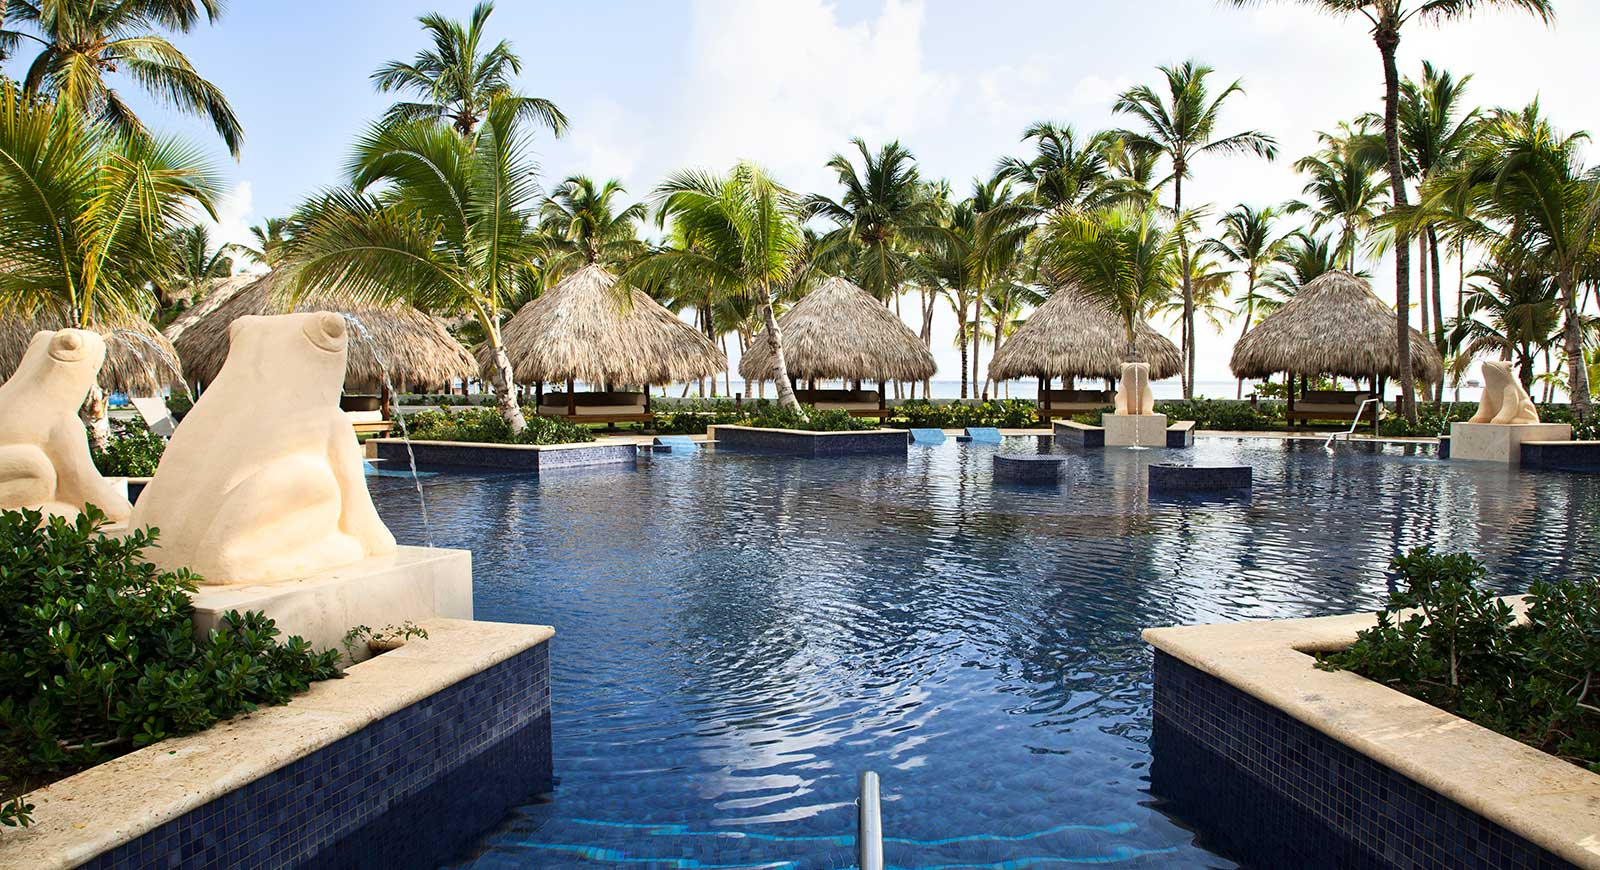 barcelo-bavaro-palace-travel-agent.jpg